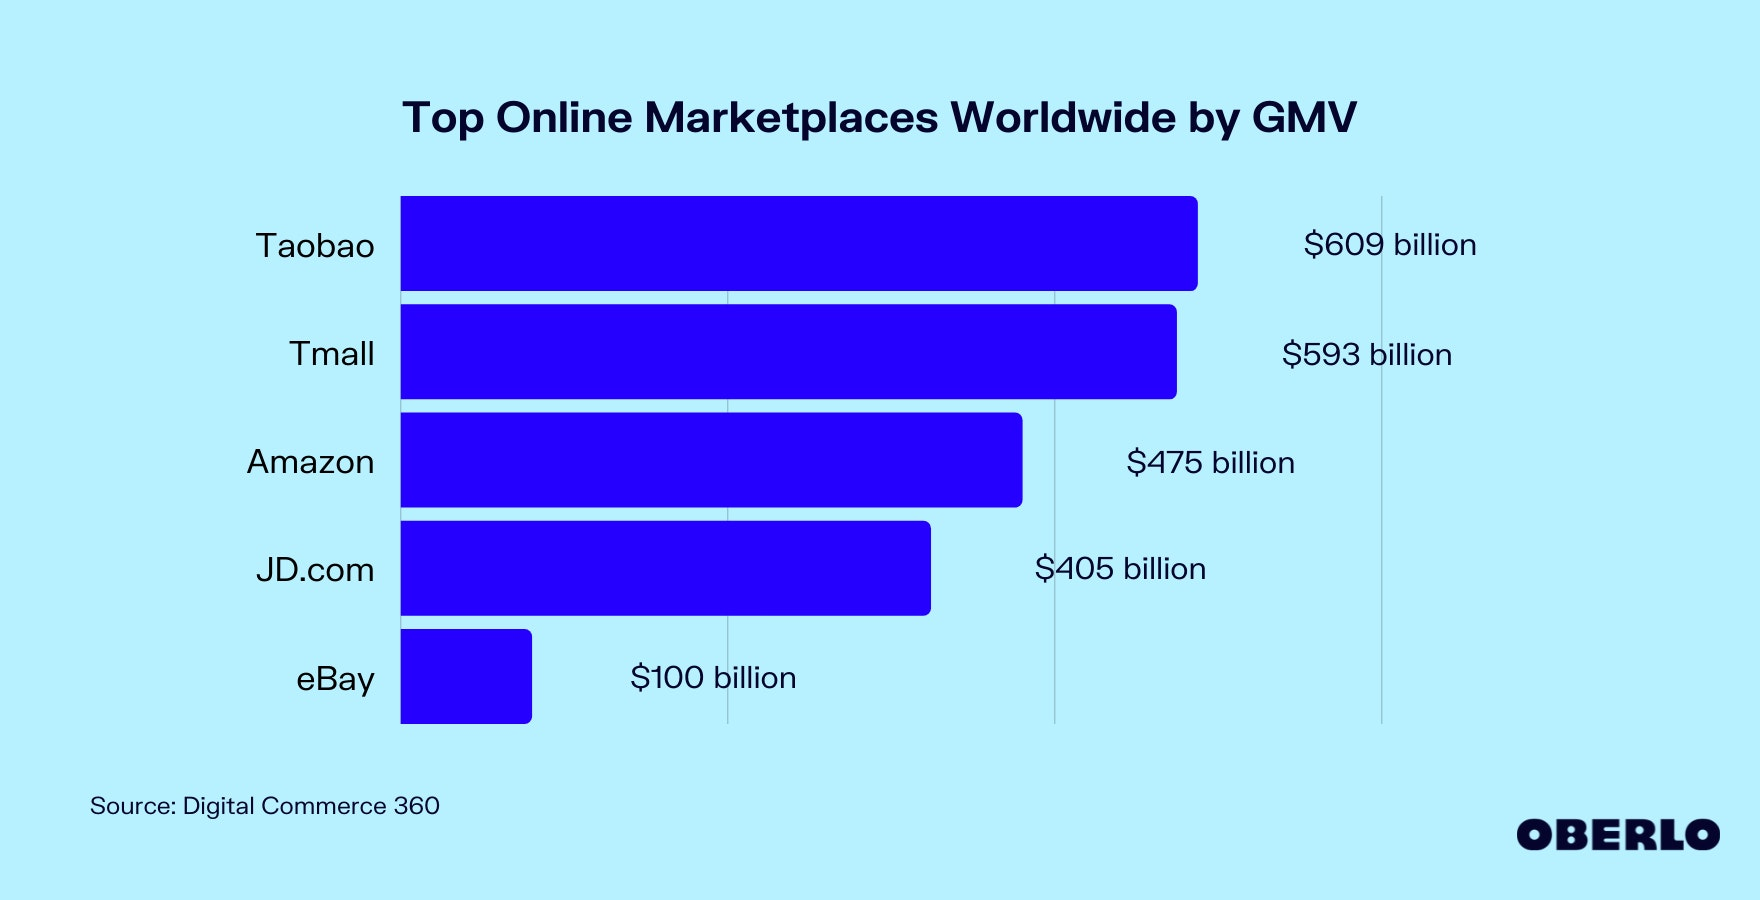 Chart of Top Online Marketplaces Worldwide by GMV